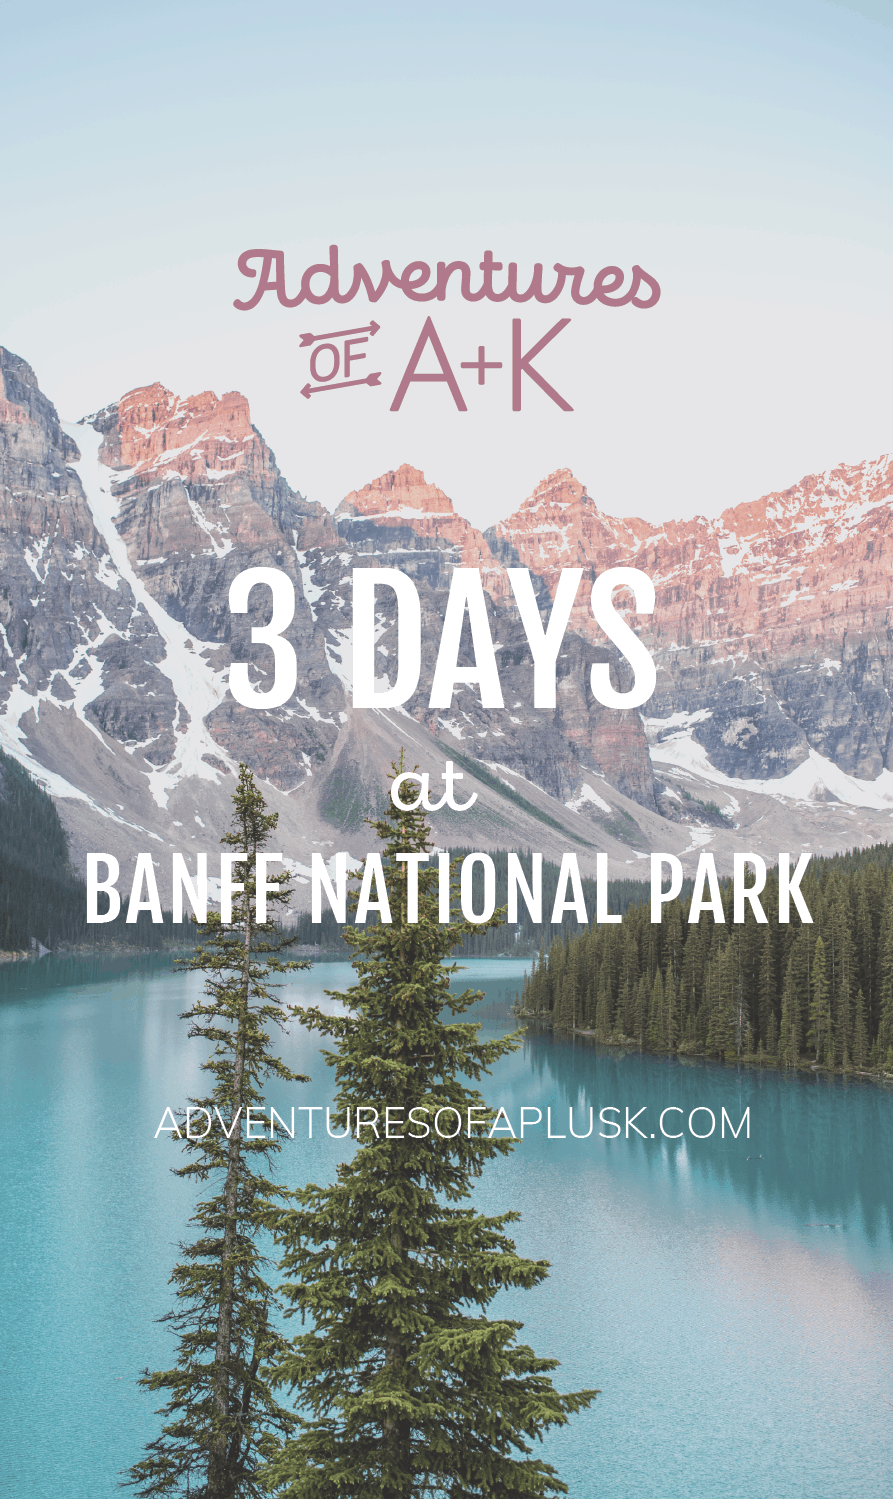 3 Days at Banff National Park | Banff Guide and Itinerary | Banff National Park | Things to do Banff | Banff Hikes | Where to stay Banff #Banff